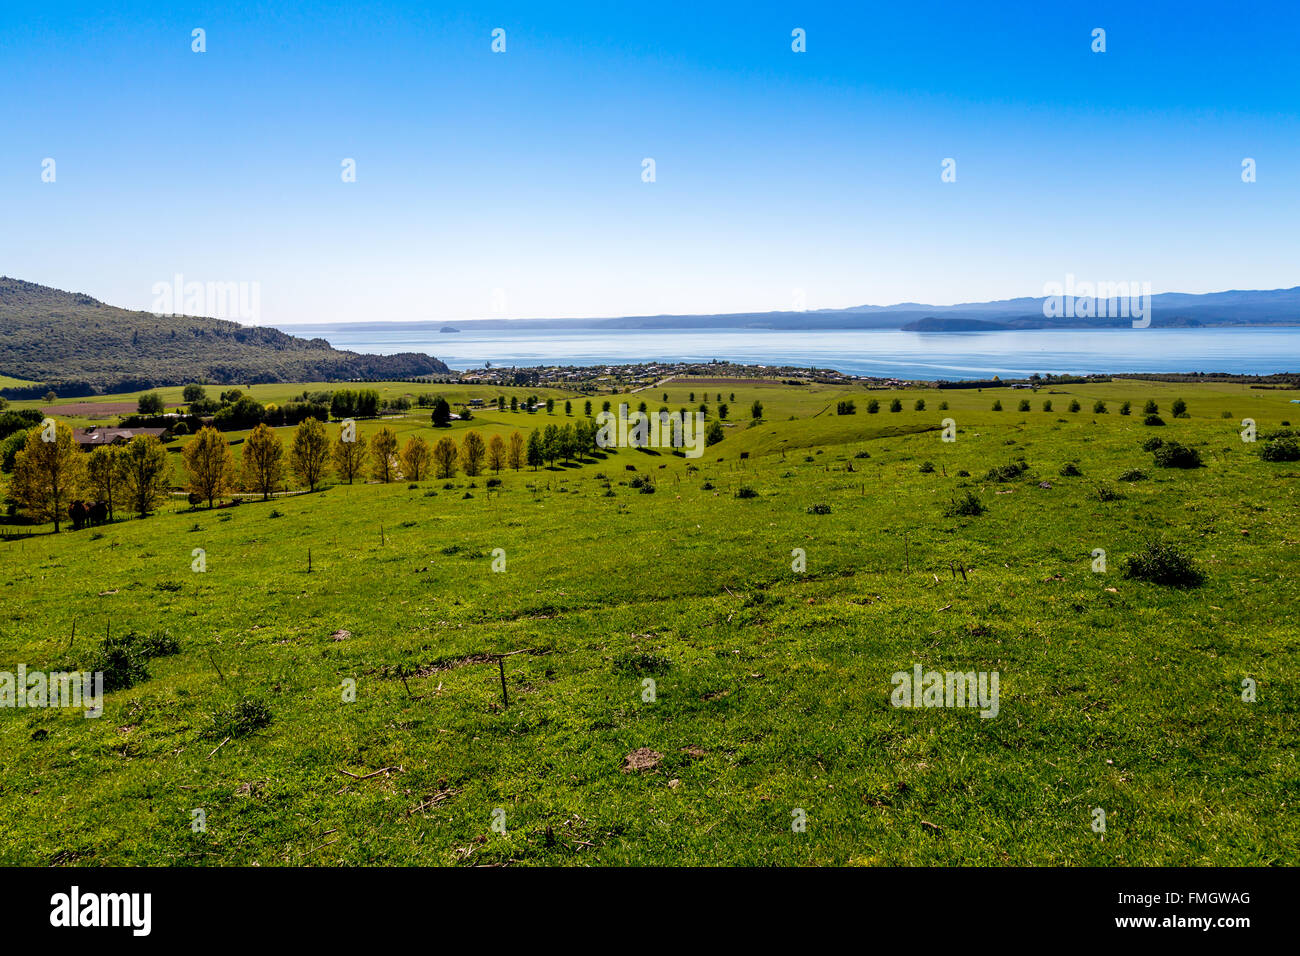 Landscape in New Zealand - Stock Image